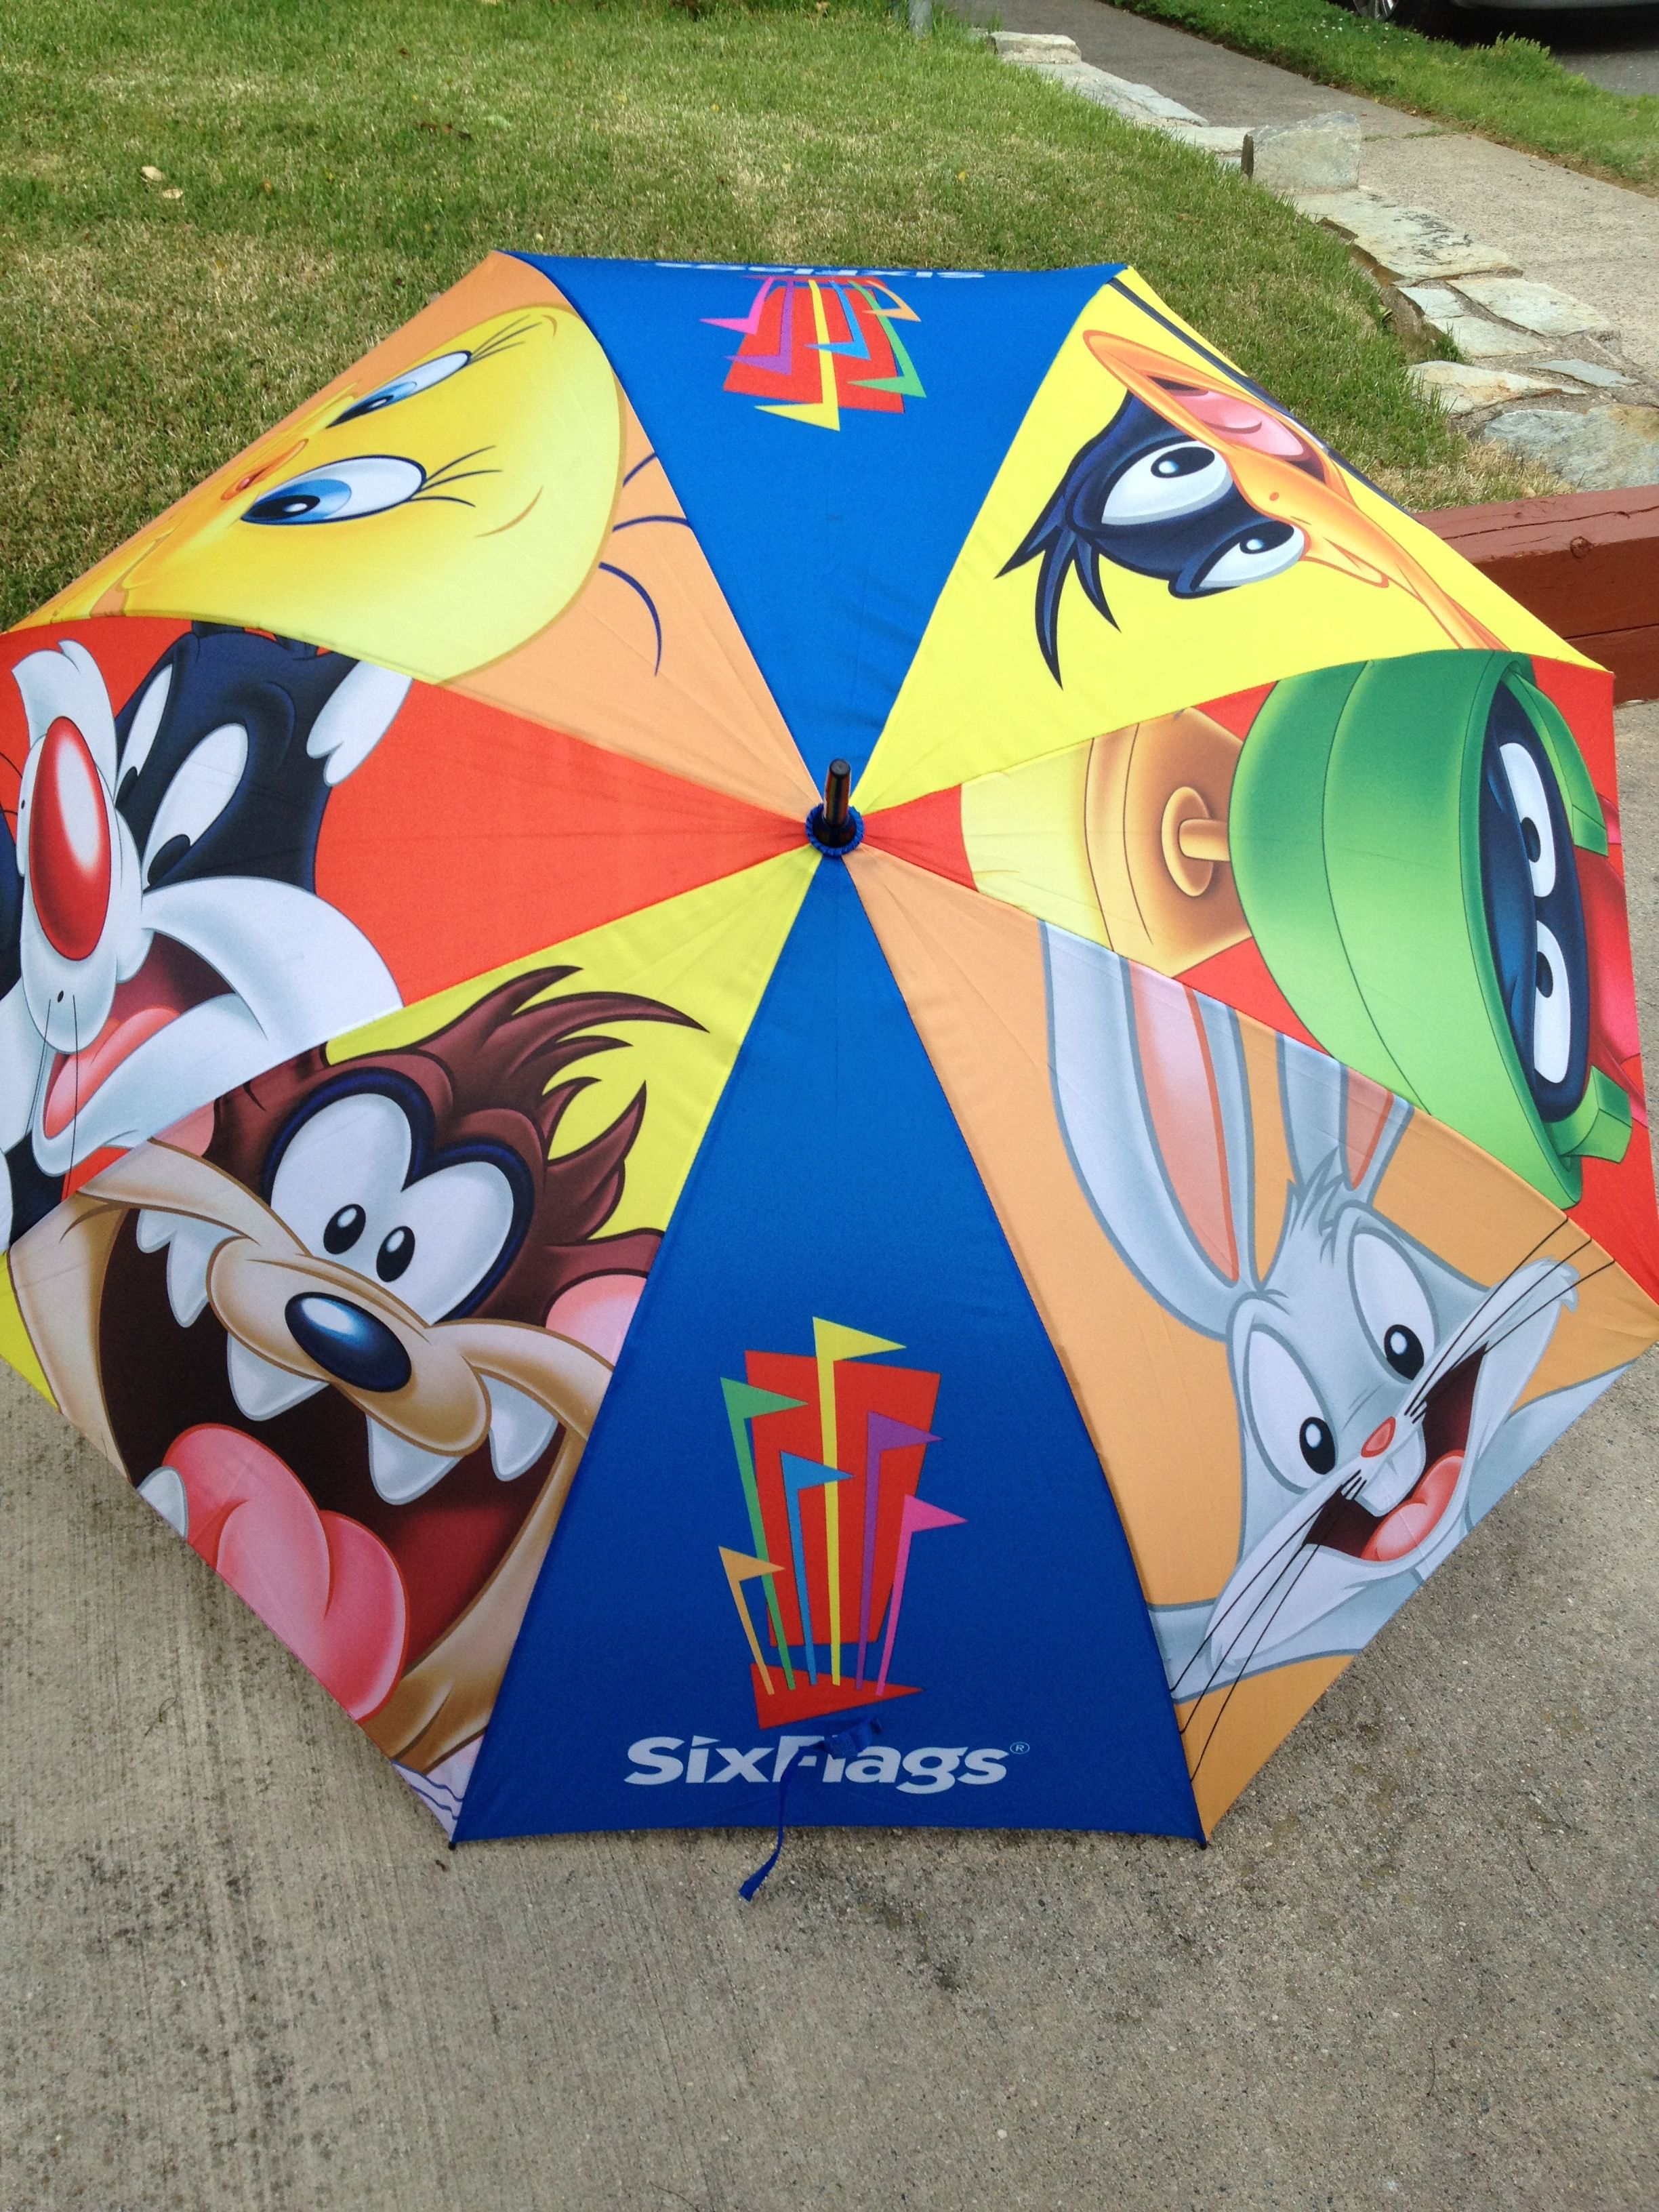 Six Flags Great Adventure Looney Tunes Umbrella From Jackson Nj Six Flags Great Adventure Looney Tunes Looney